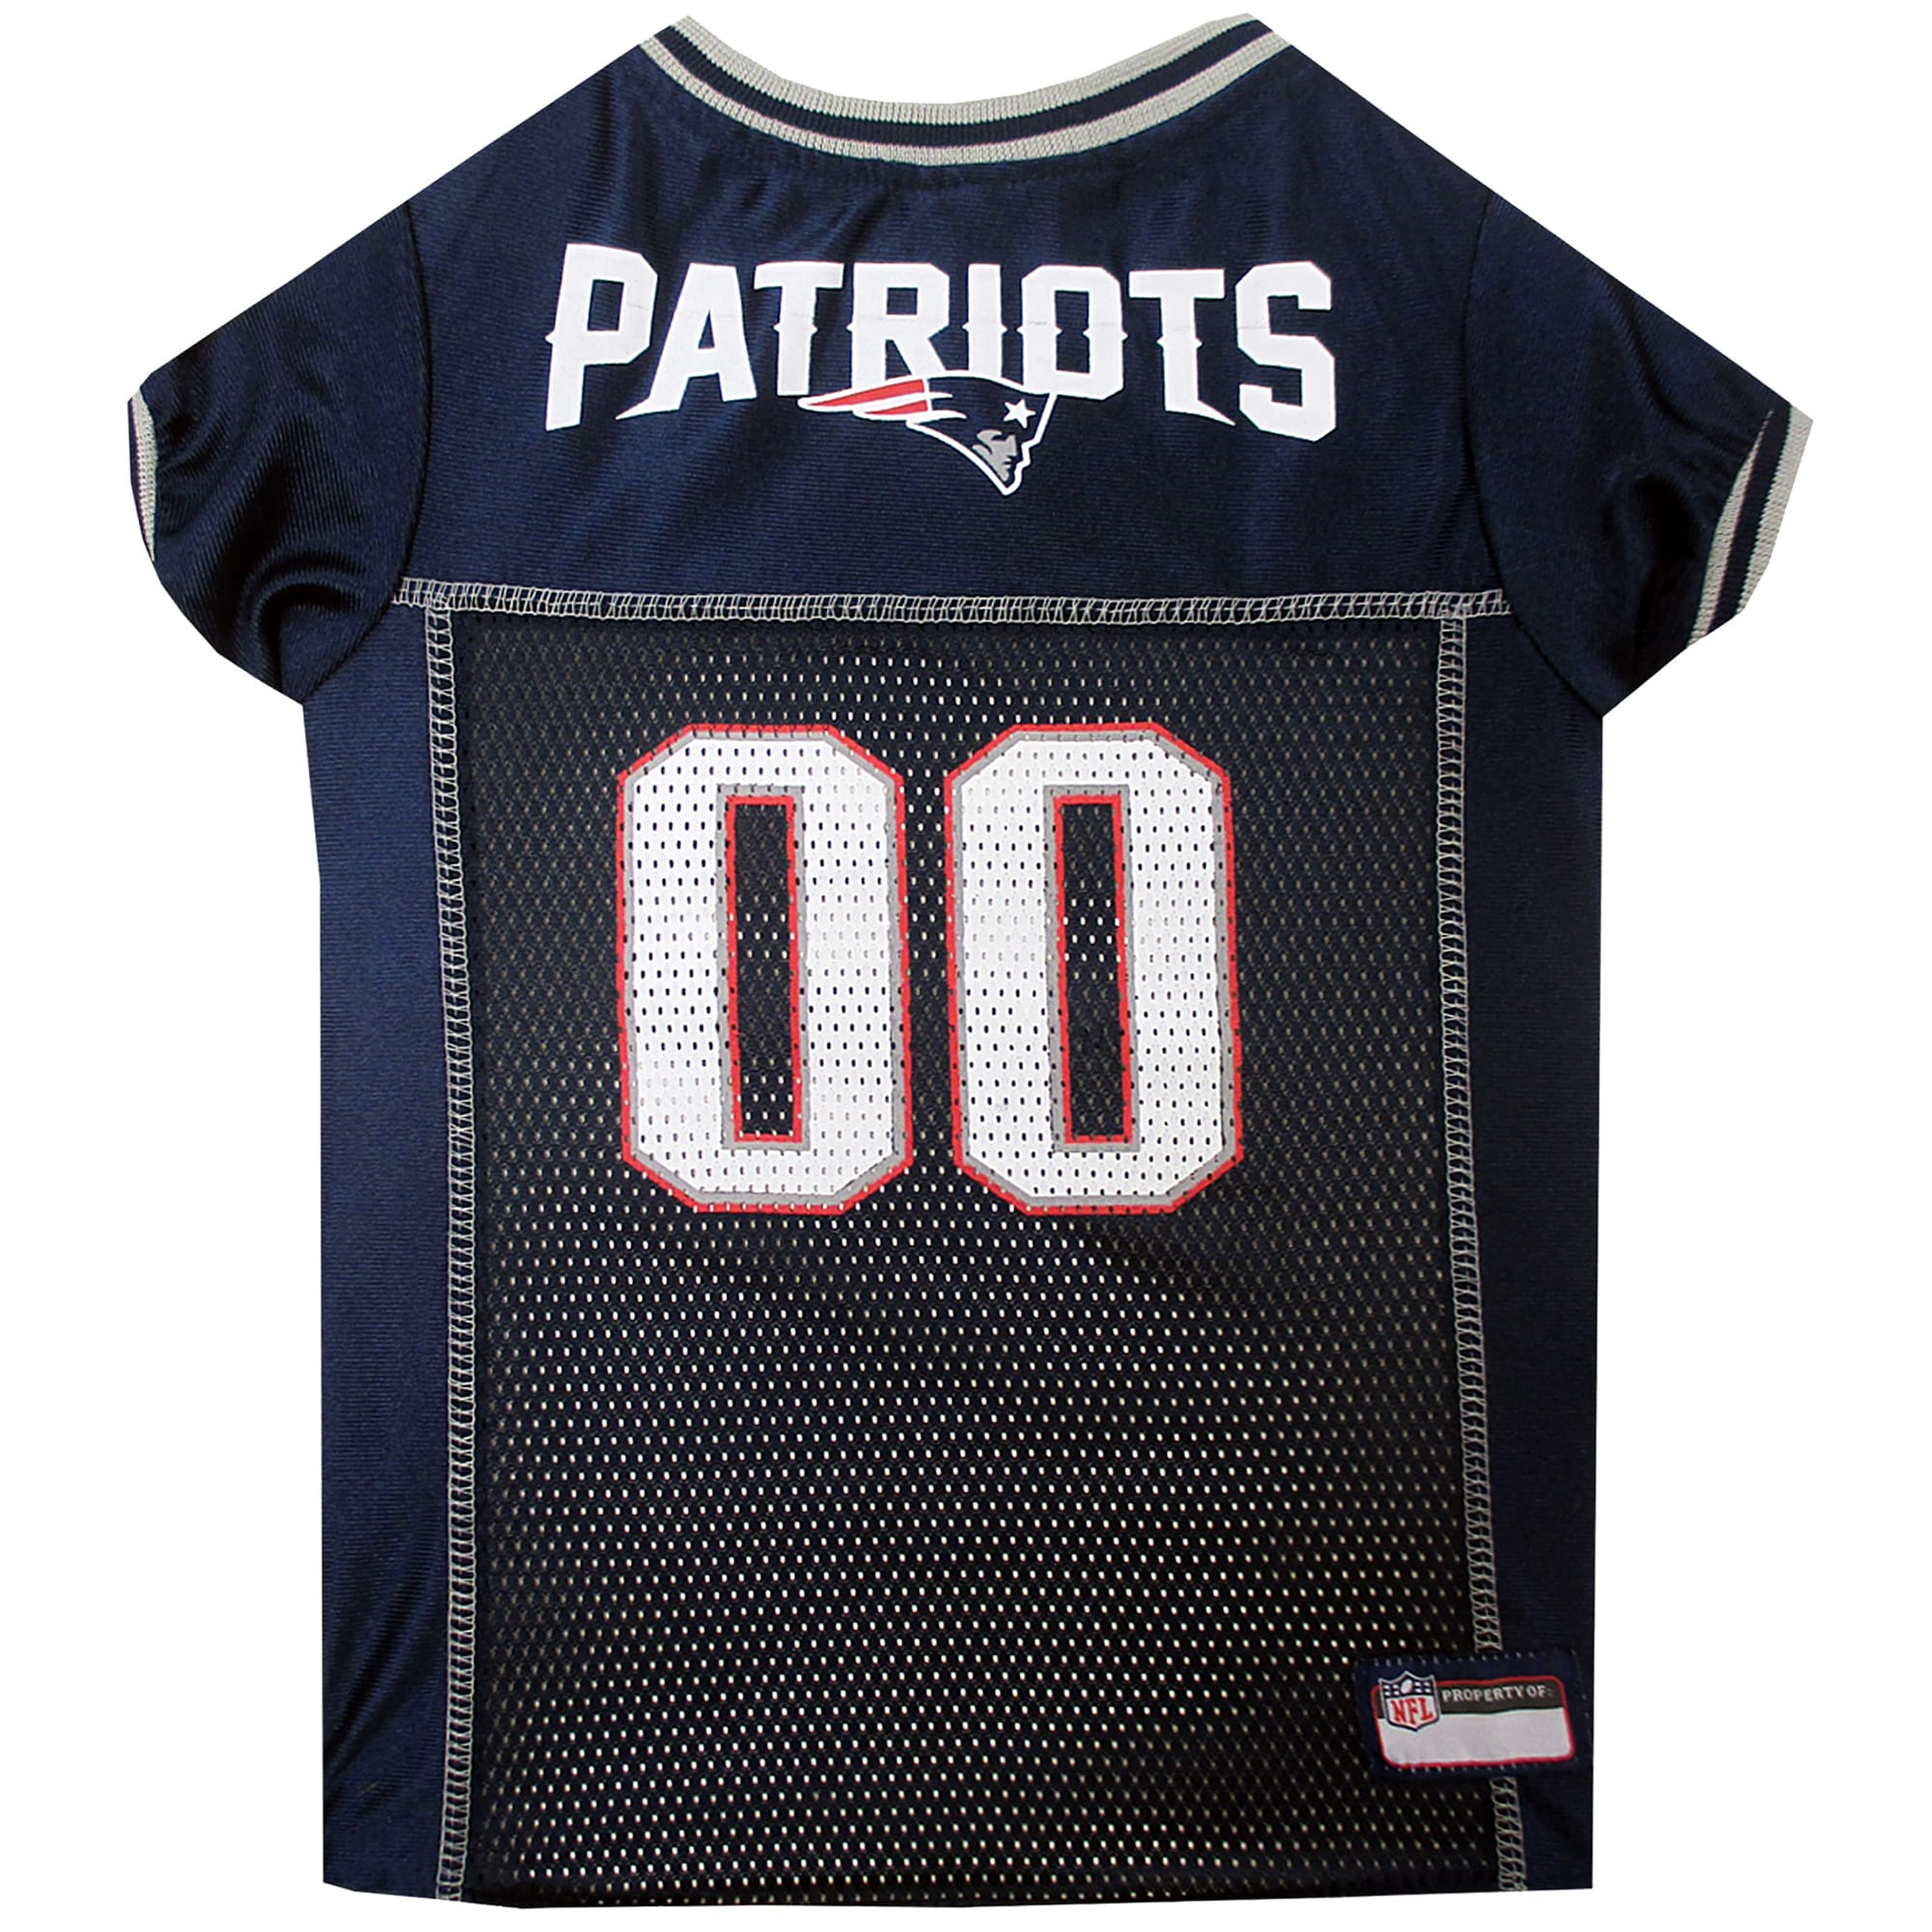 Pets First New England Patriots Nfl Mesh Pet Jersey X Small Petco